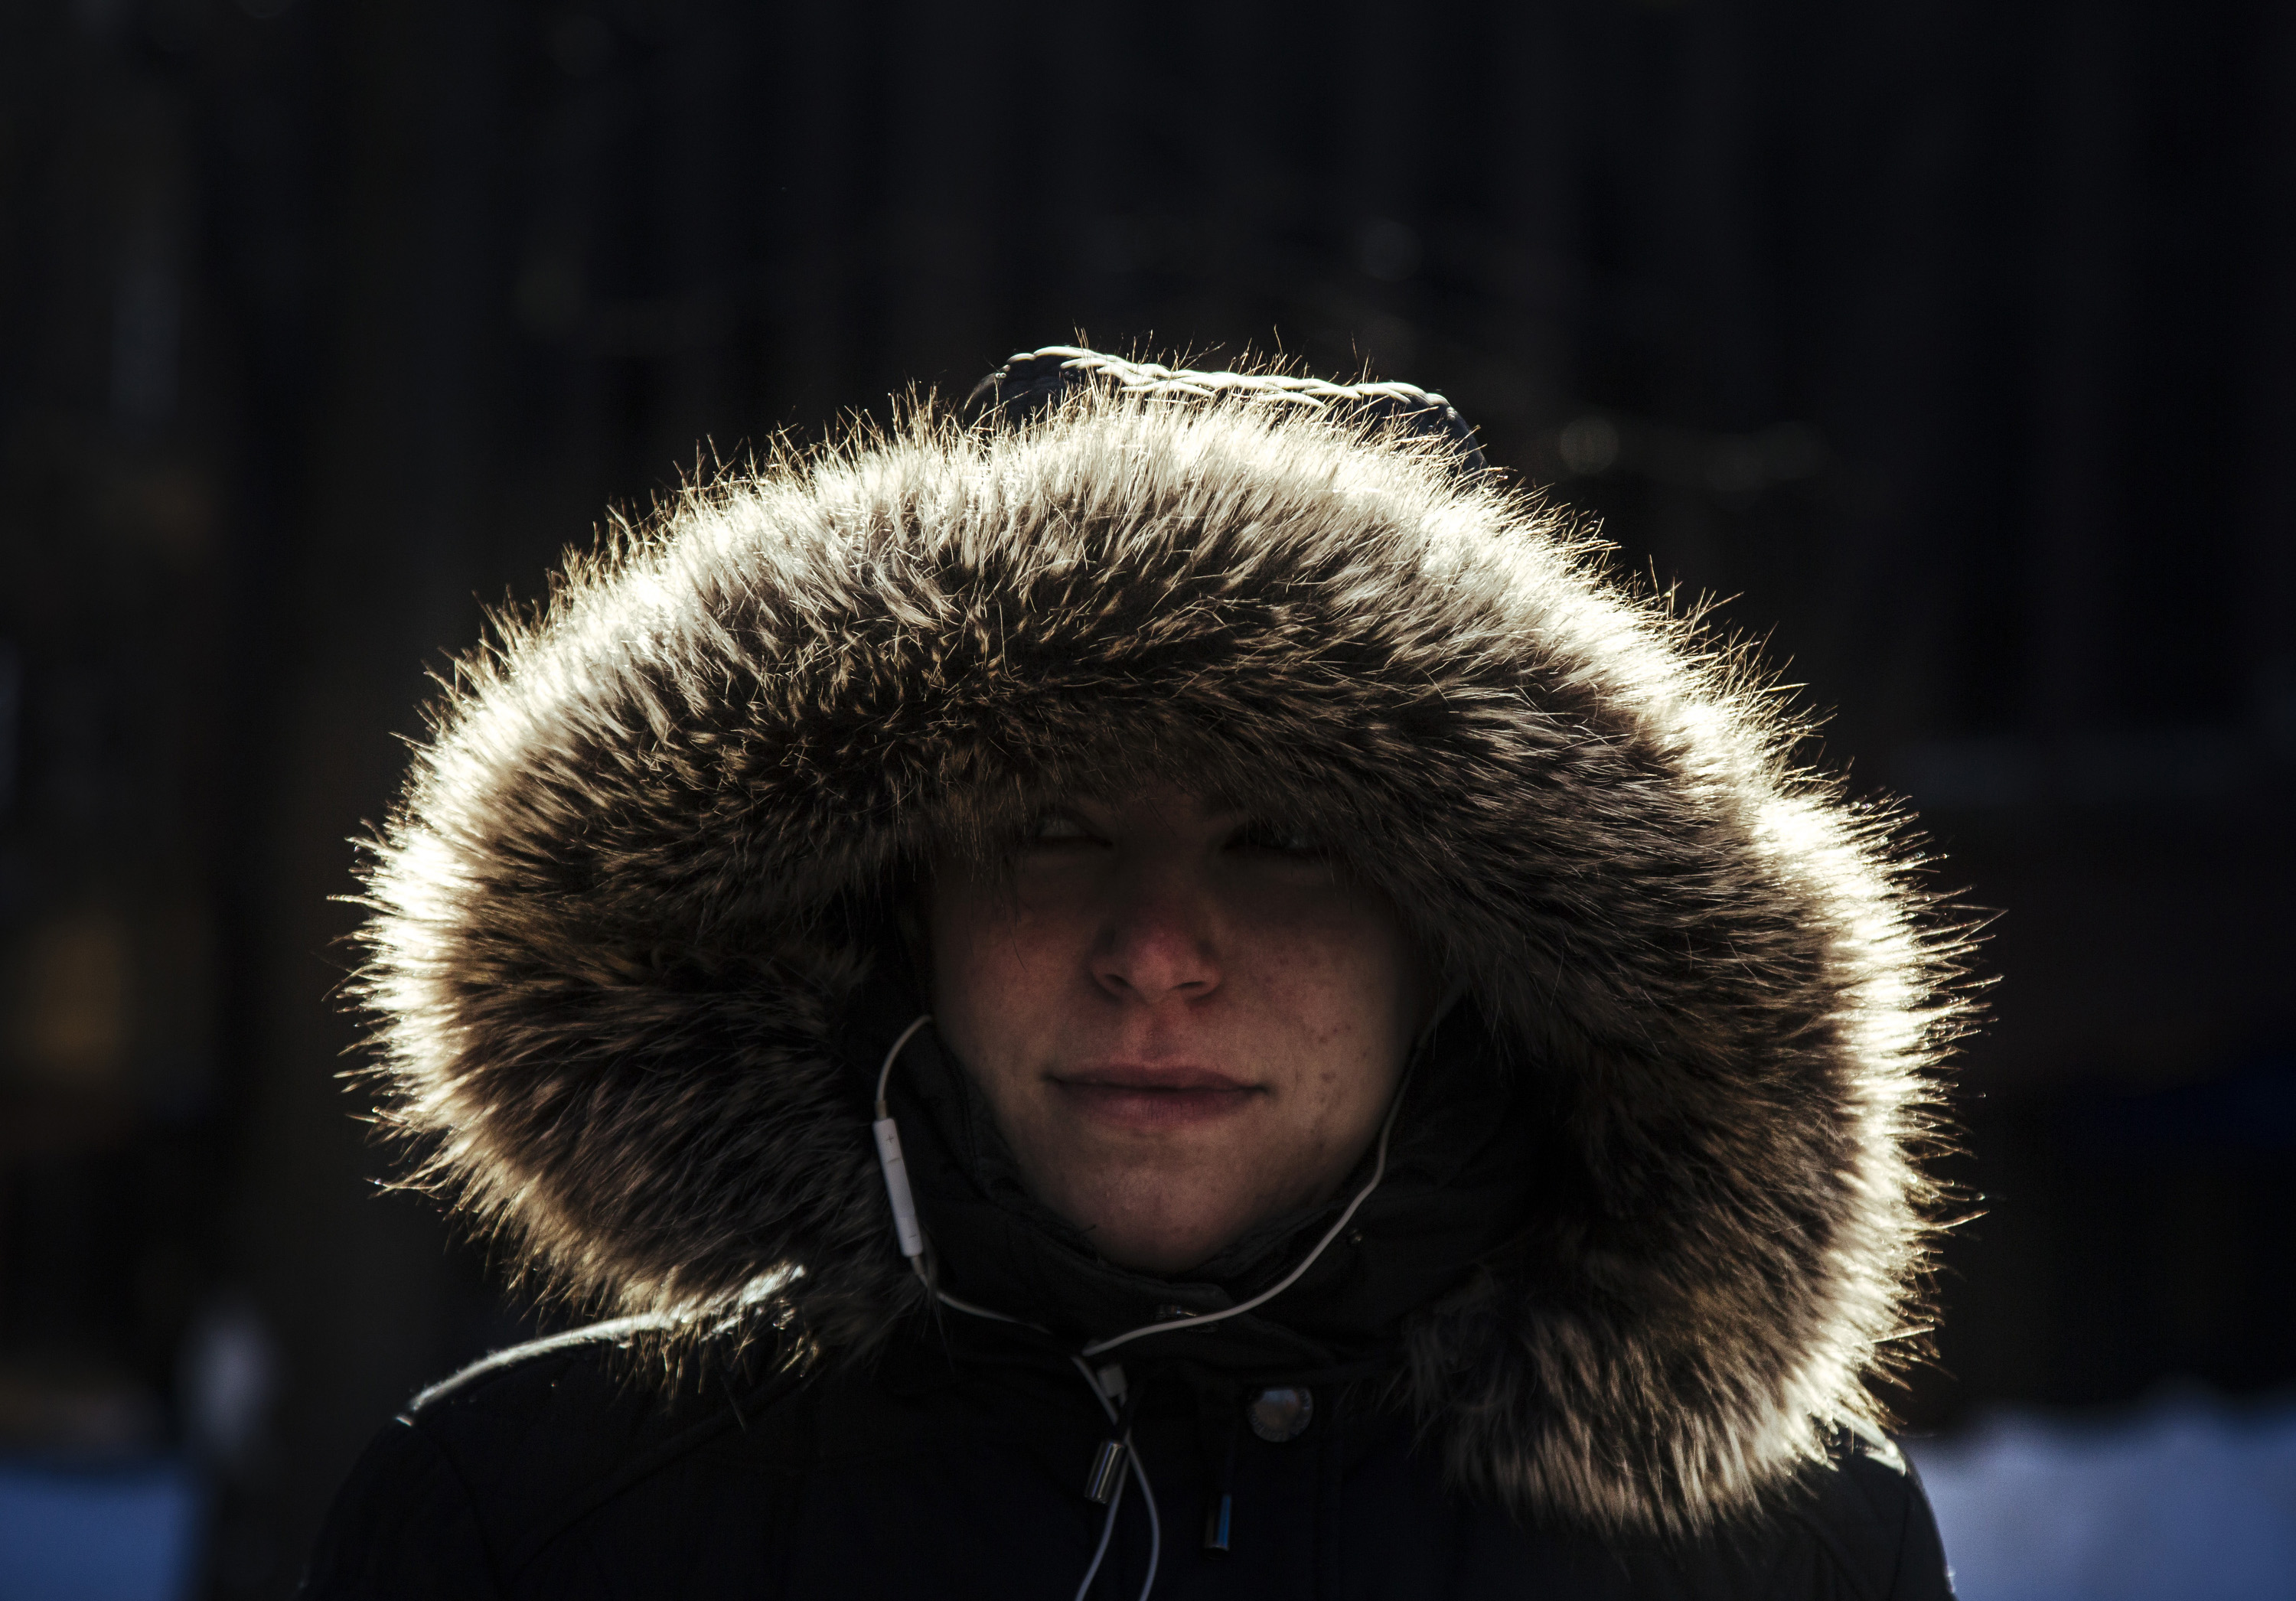 Woman wears hooded coat with fur trim in cold weather